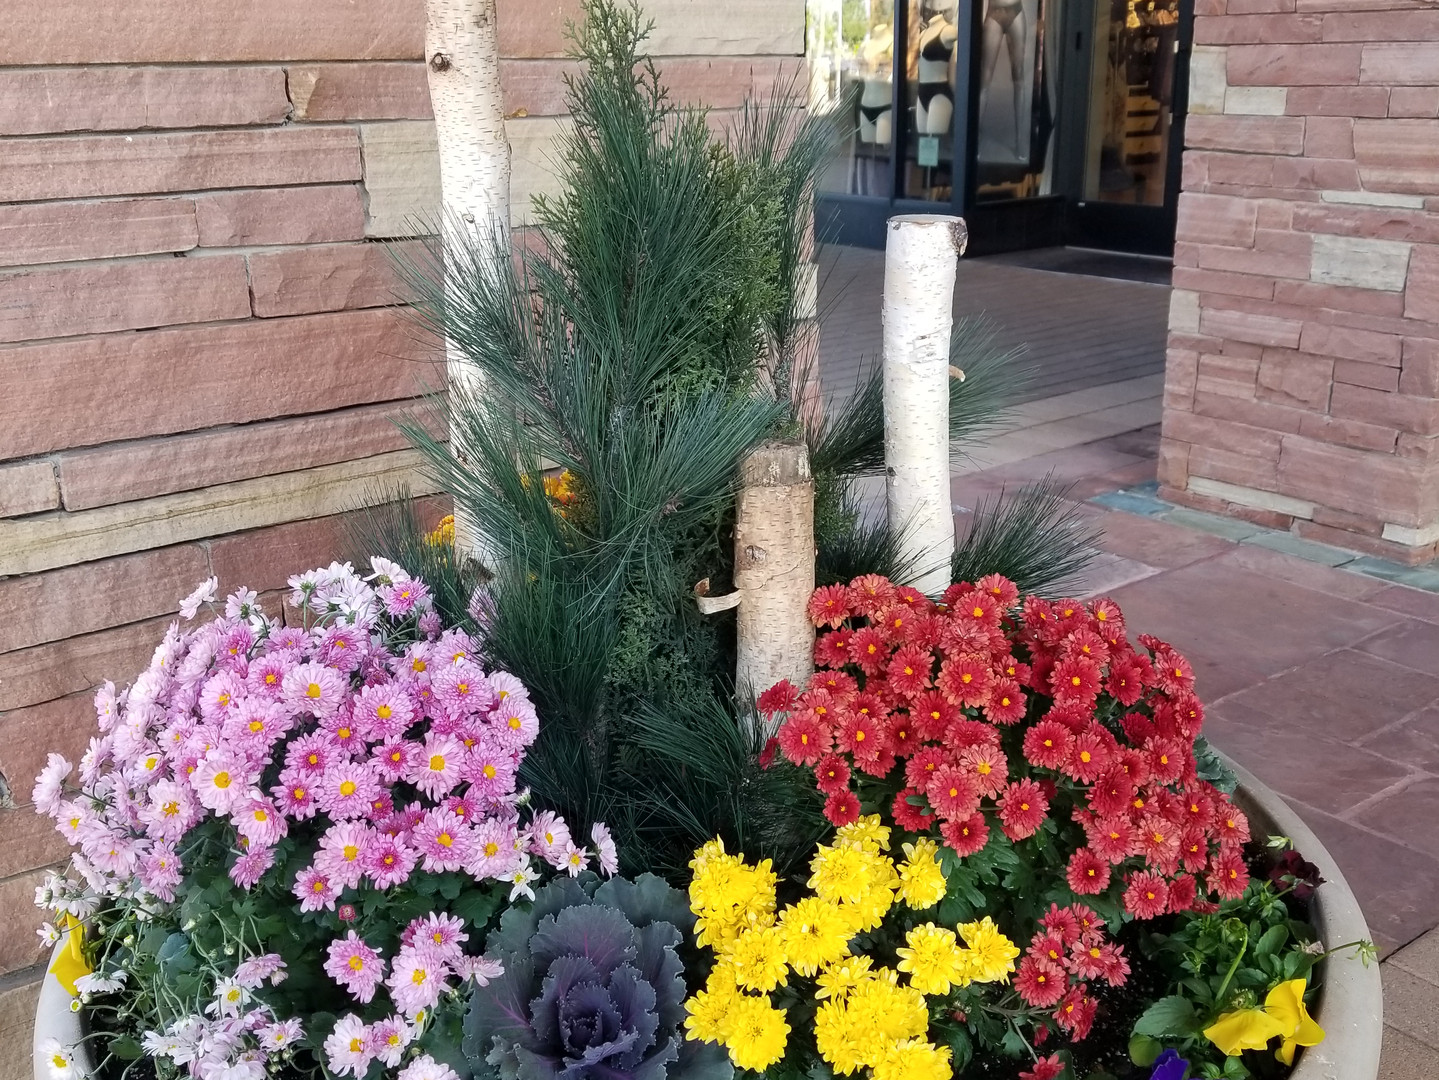 Fall Annuals Park Meadows Mall.jpg